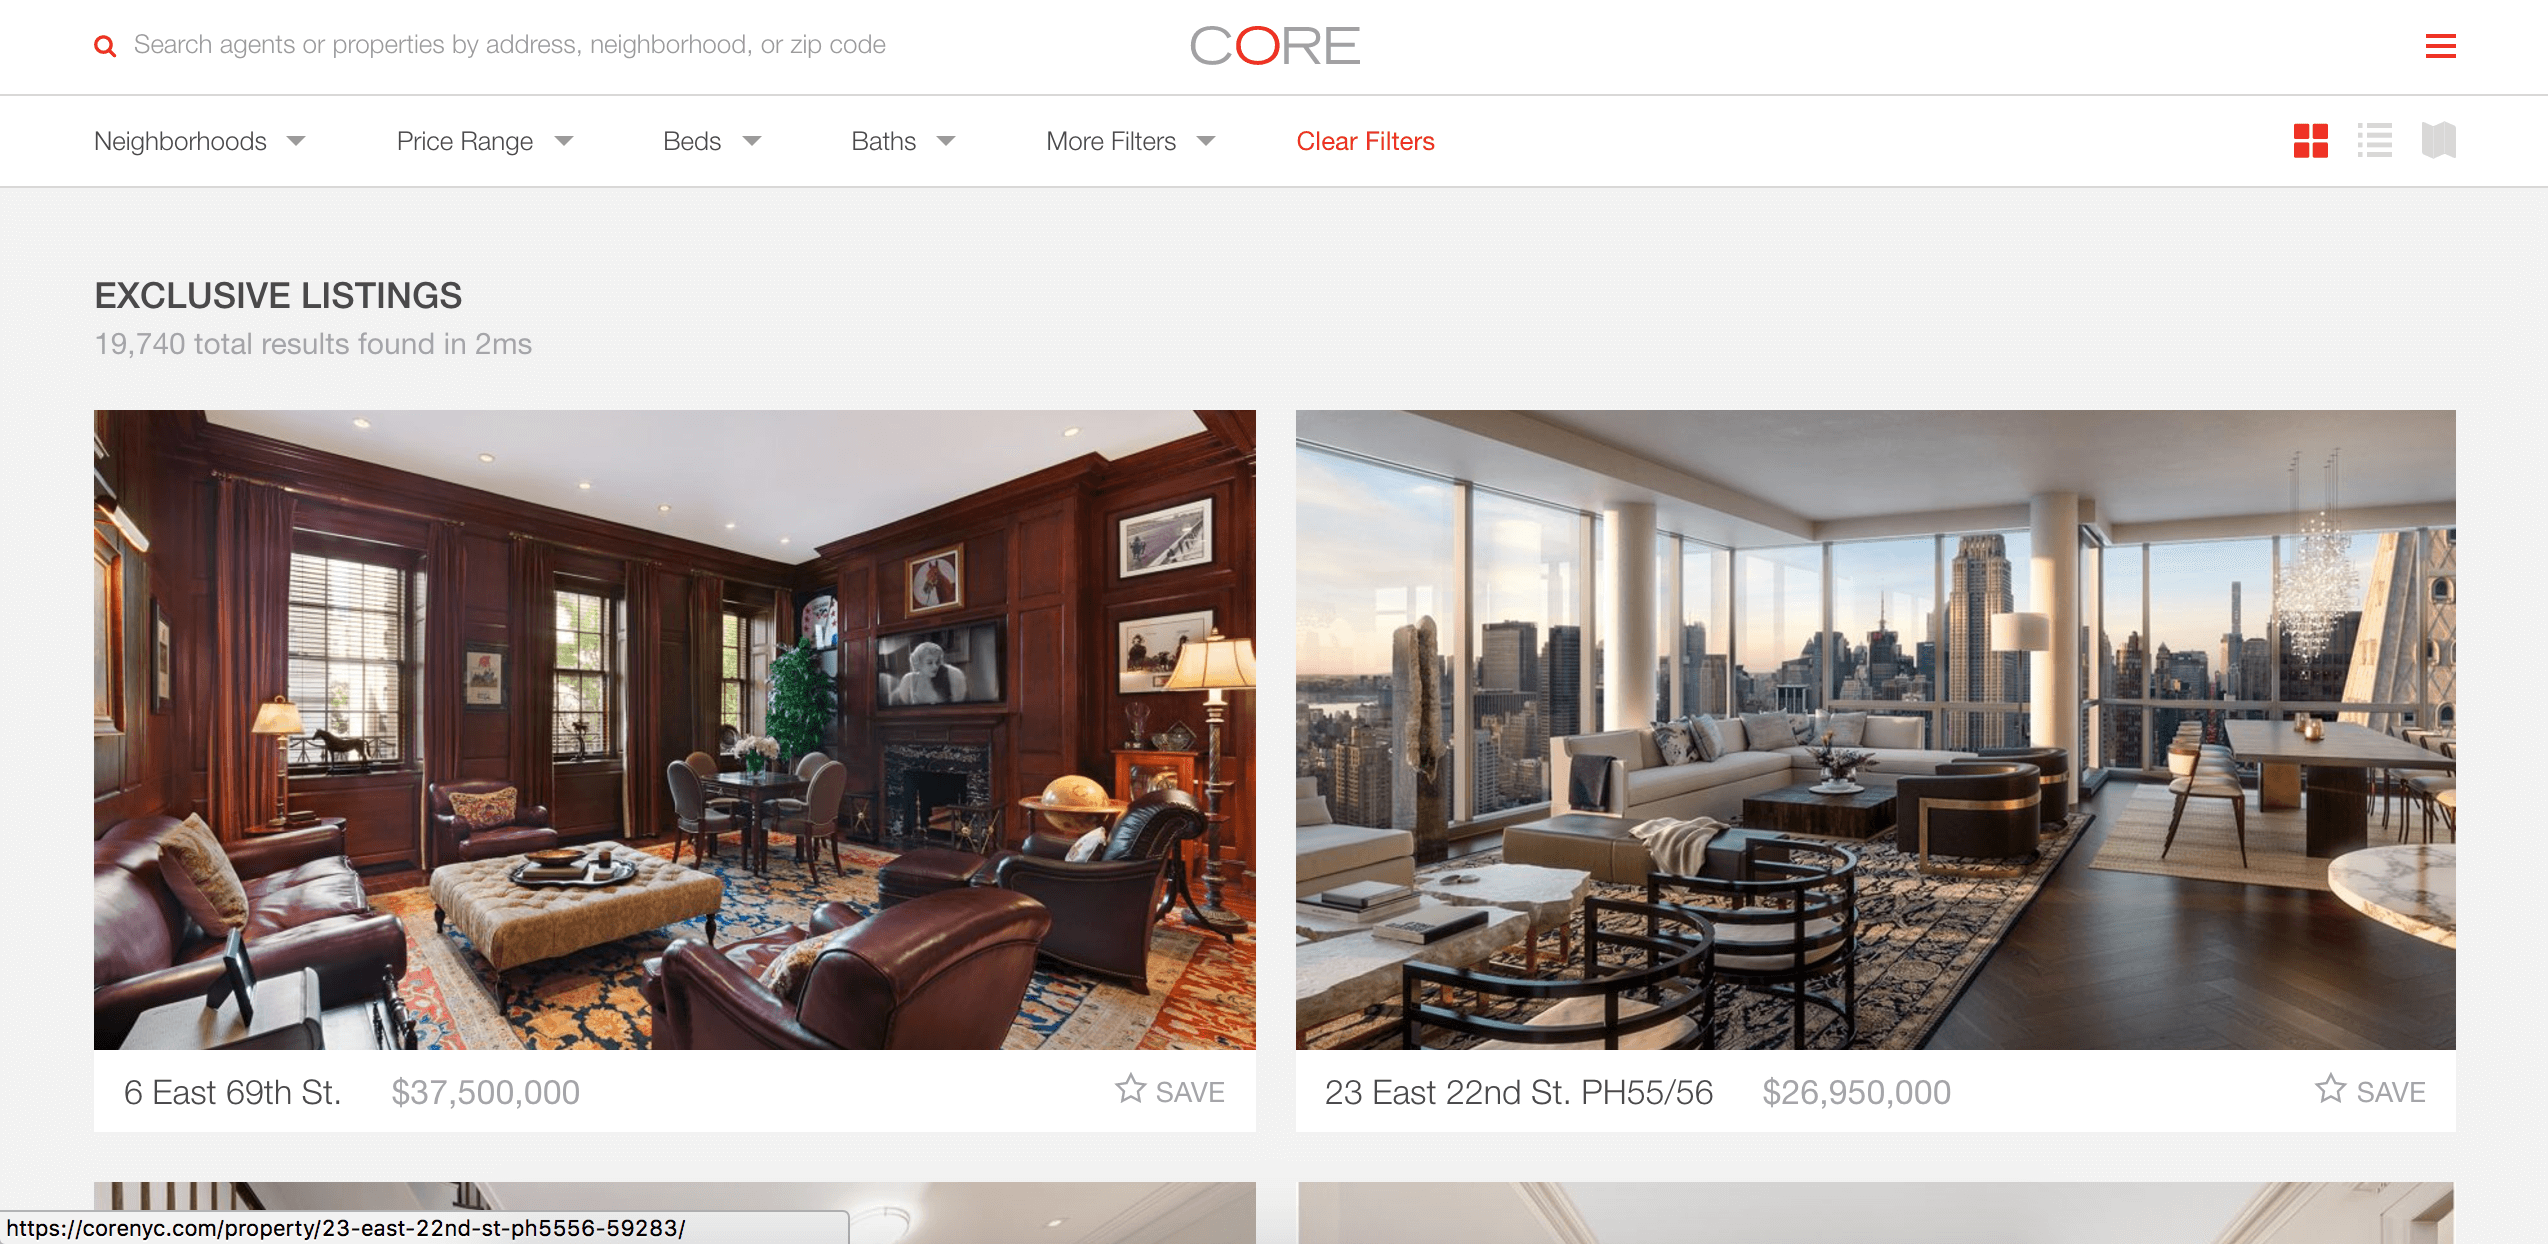 CORE Real Estate Website